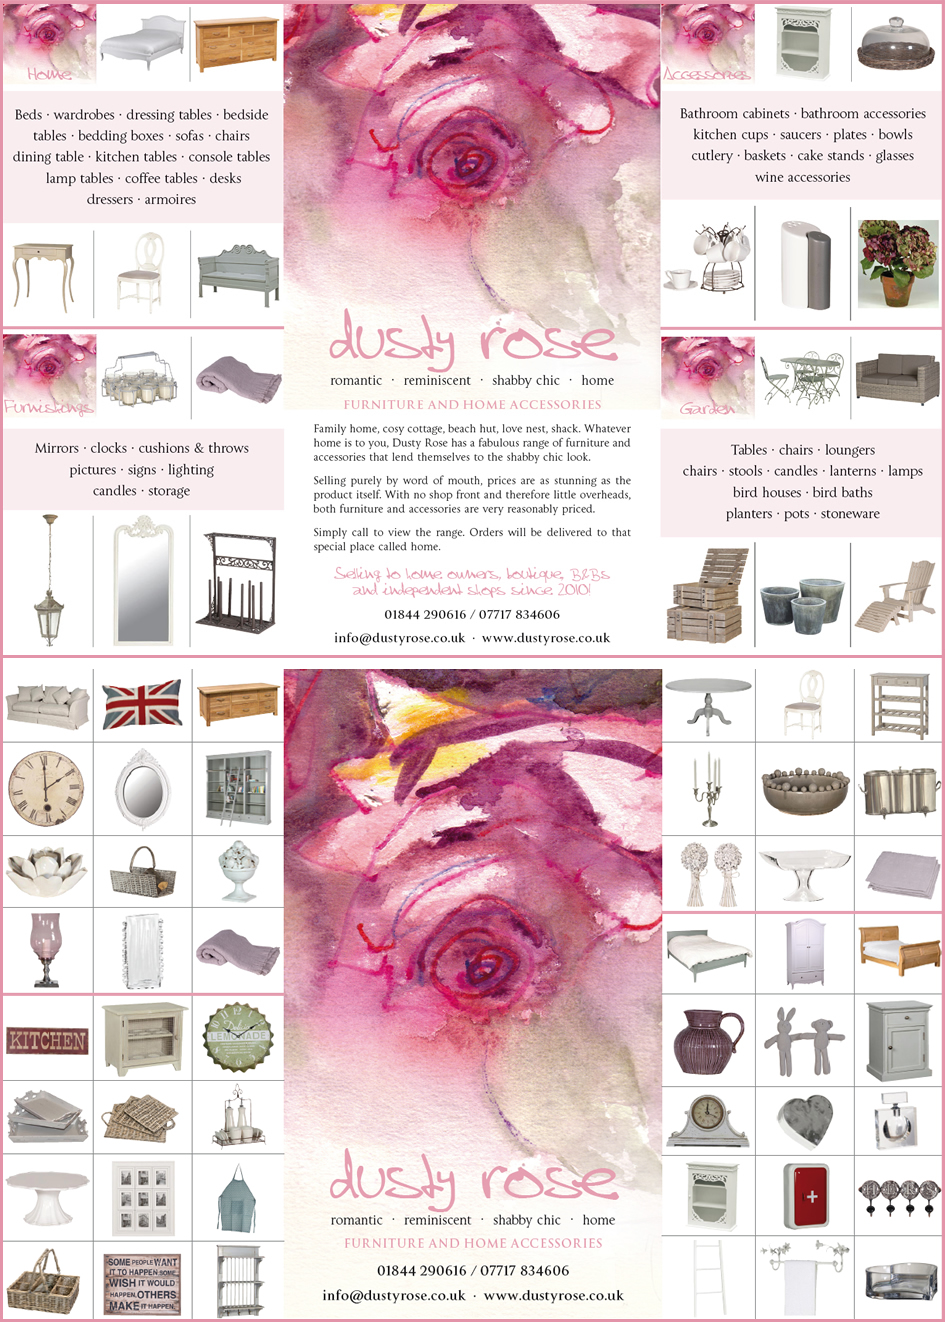 Dusty Rose - Furniture and Home Accessories